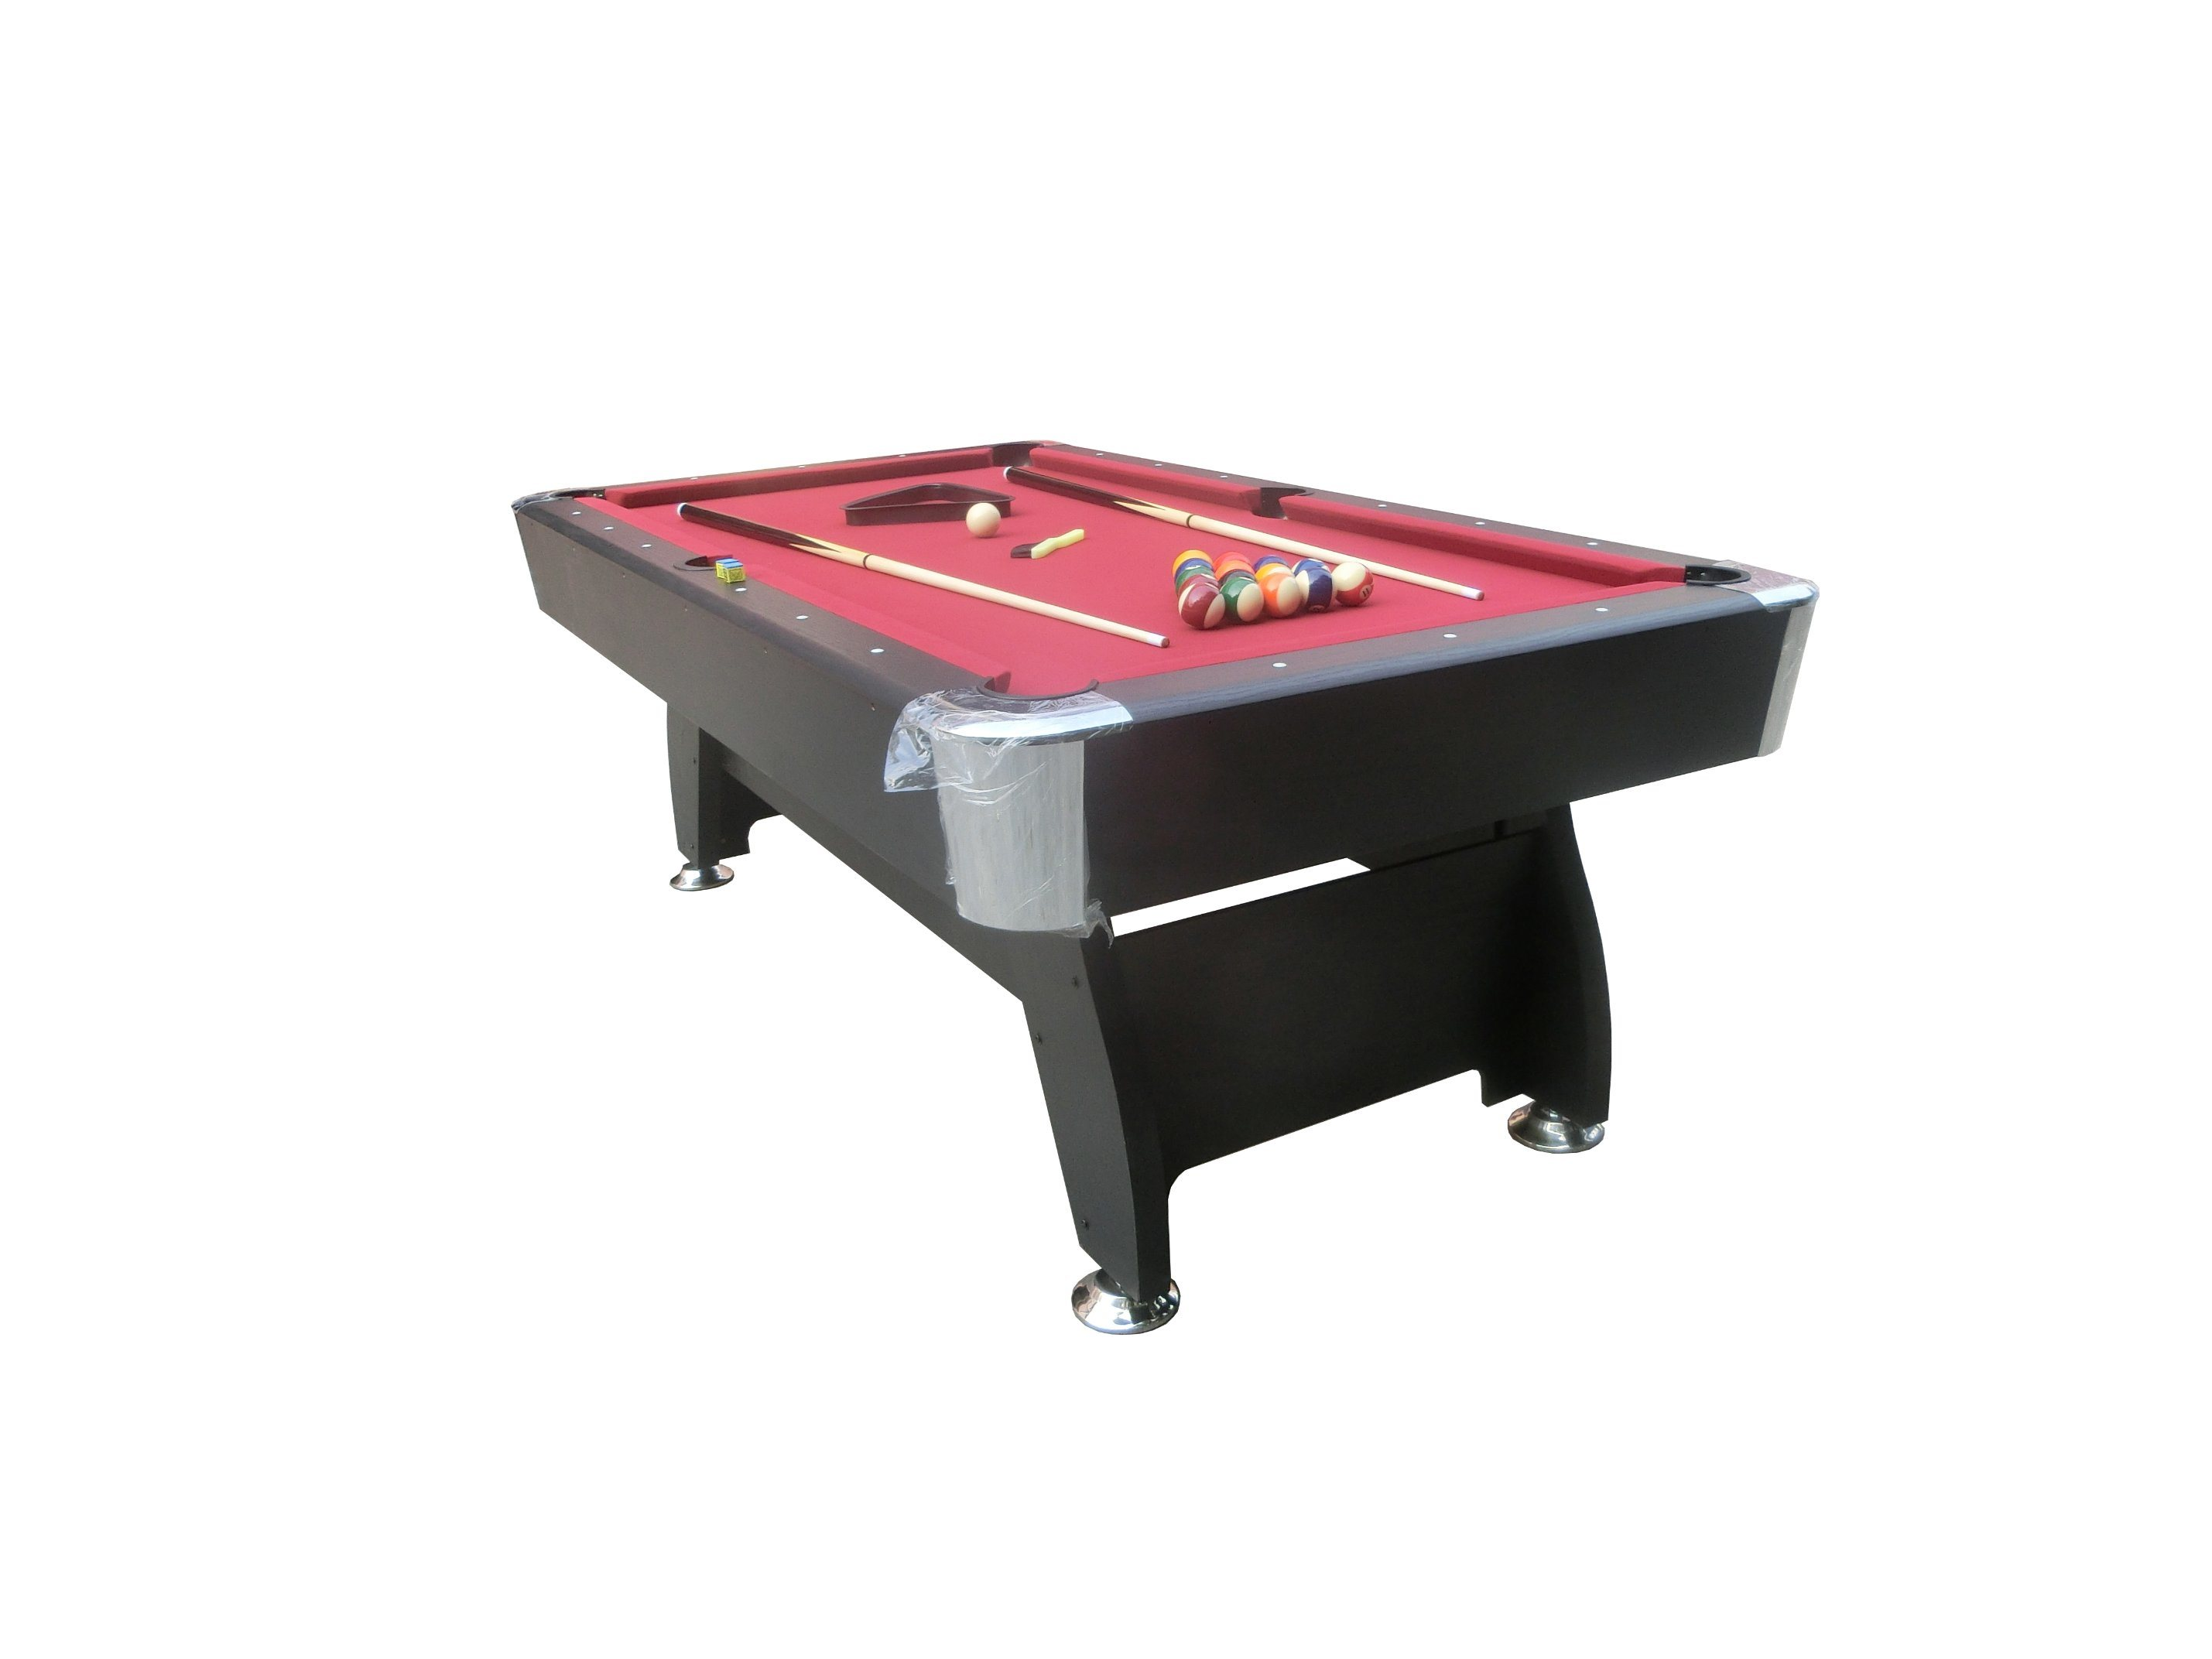 8FT MDF Billiard Table Including Accessories